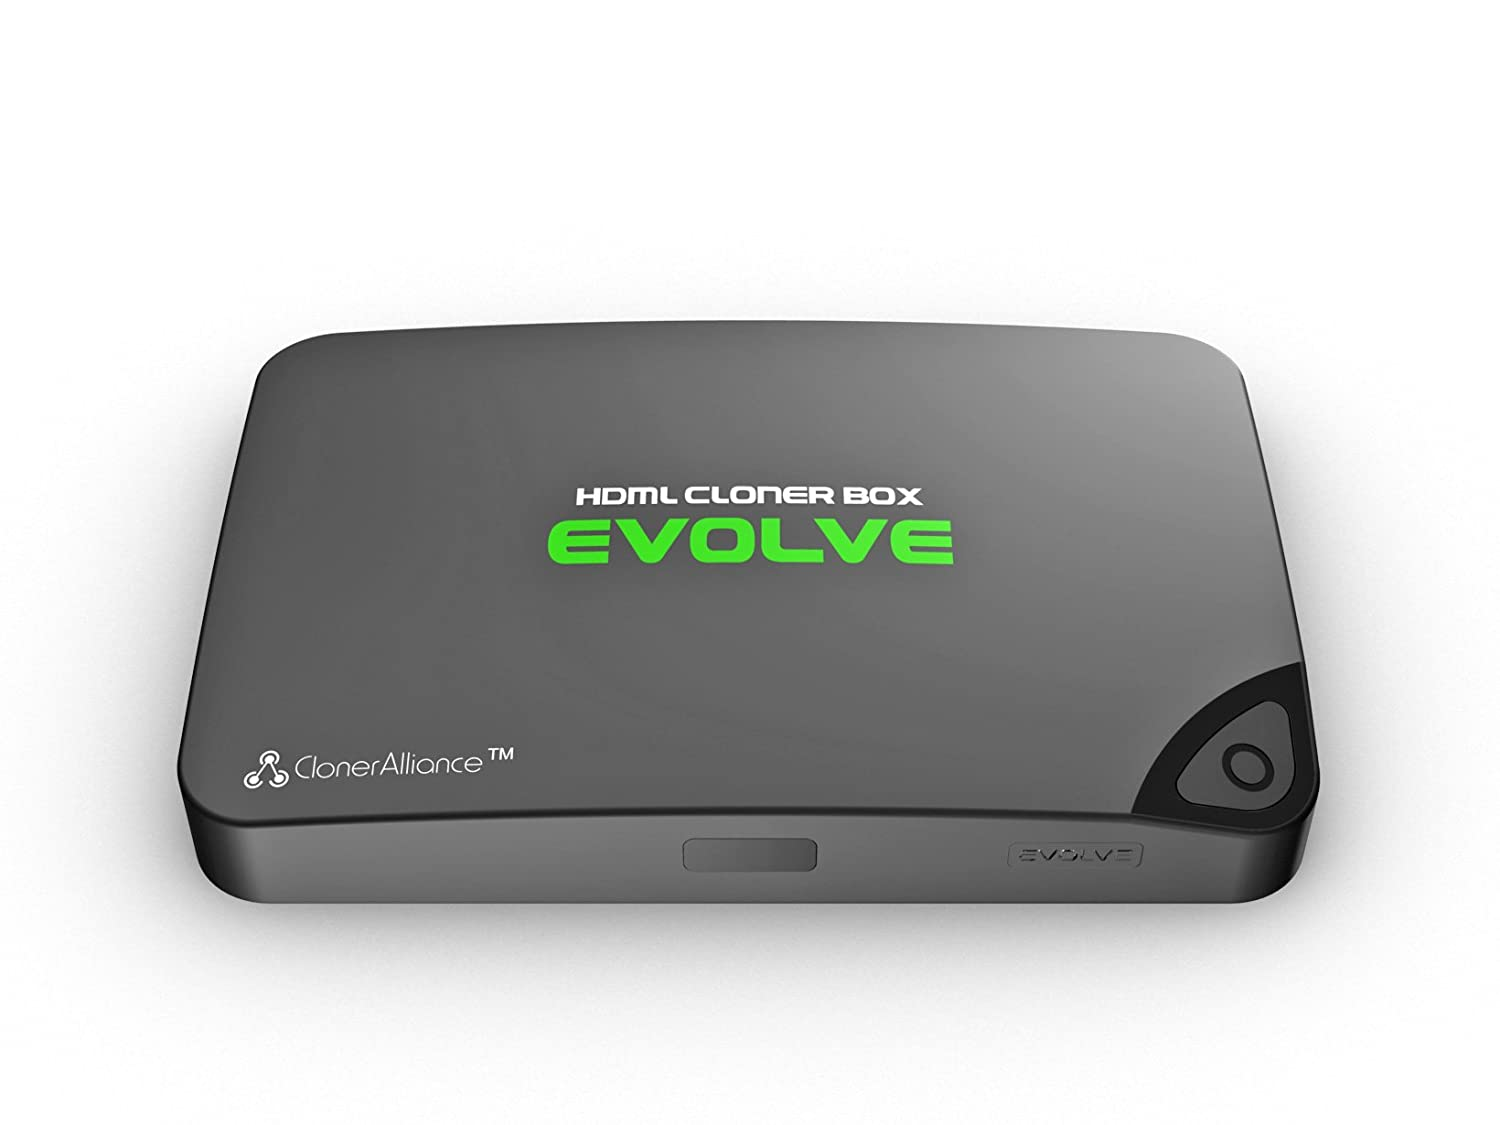 Amazon.com: HDML-Cloner Box Evolve, 2 HDMI inputs and 4K video input  supported, Capture HDMI videos and games to USB flash drive/TF MicroSD card  without PC, ...